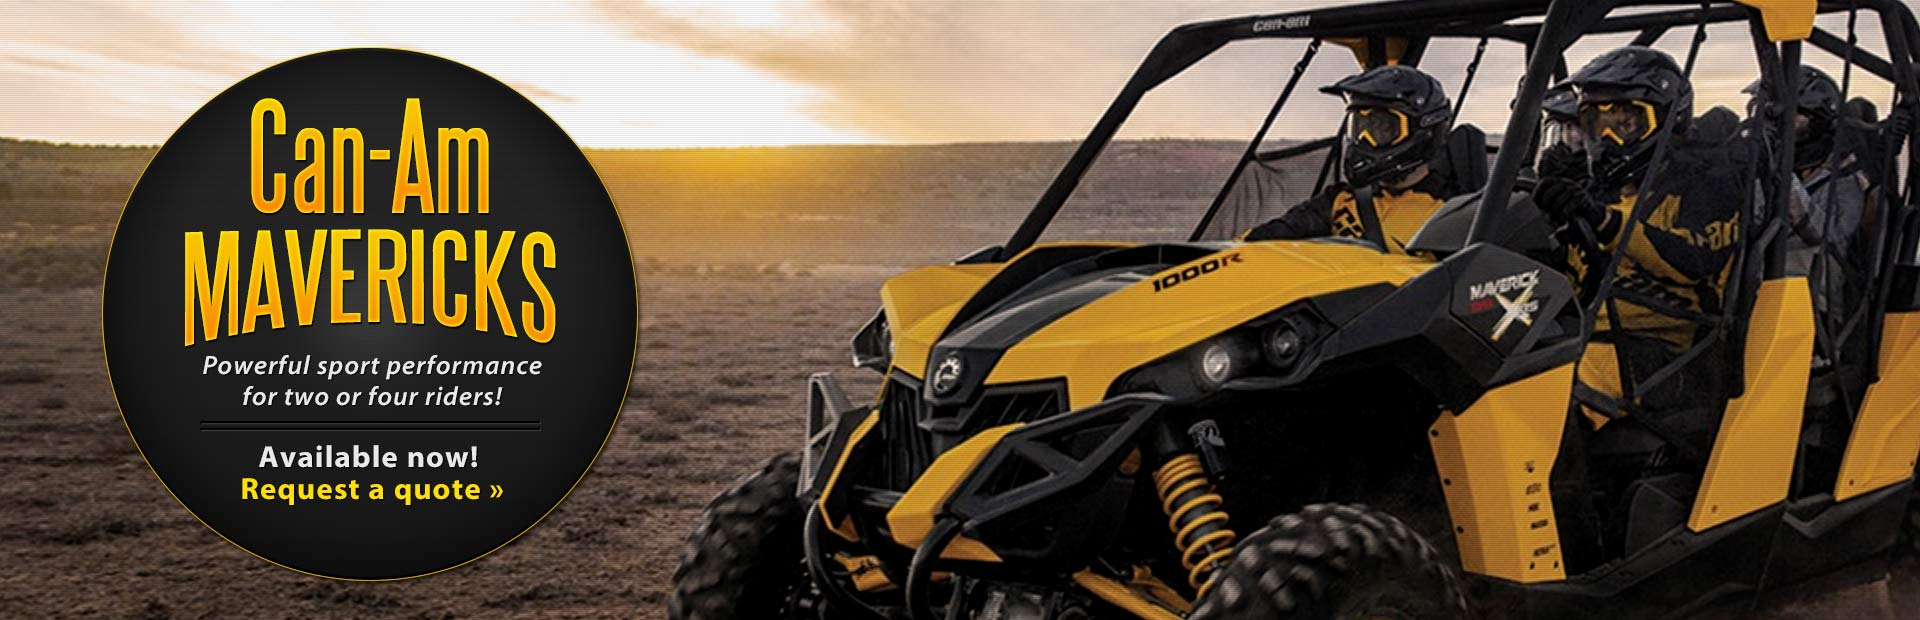 View the new Can-Am Mavericks.